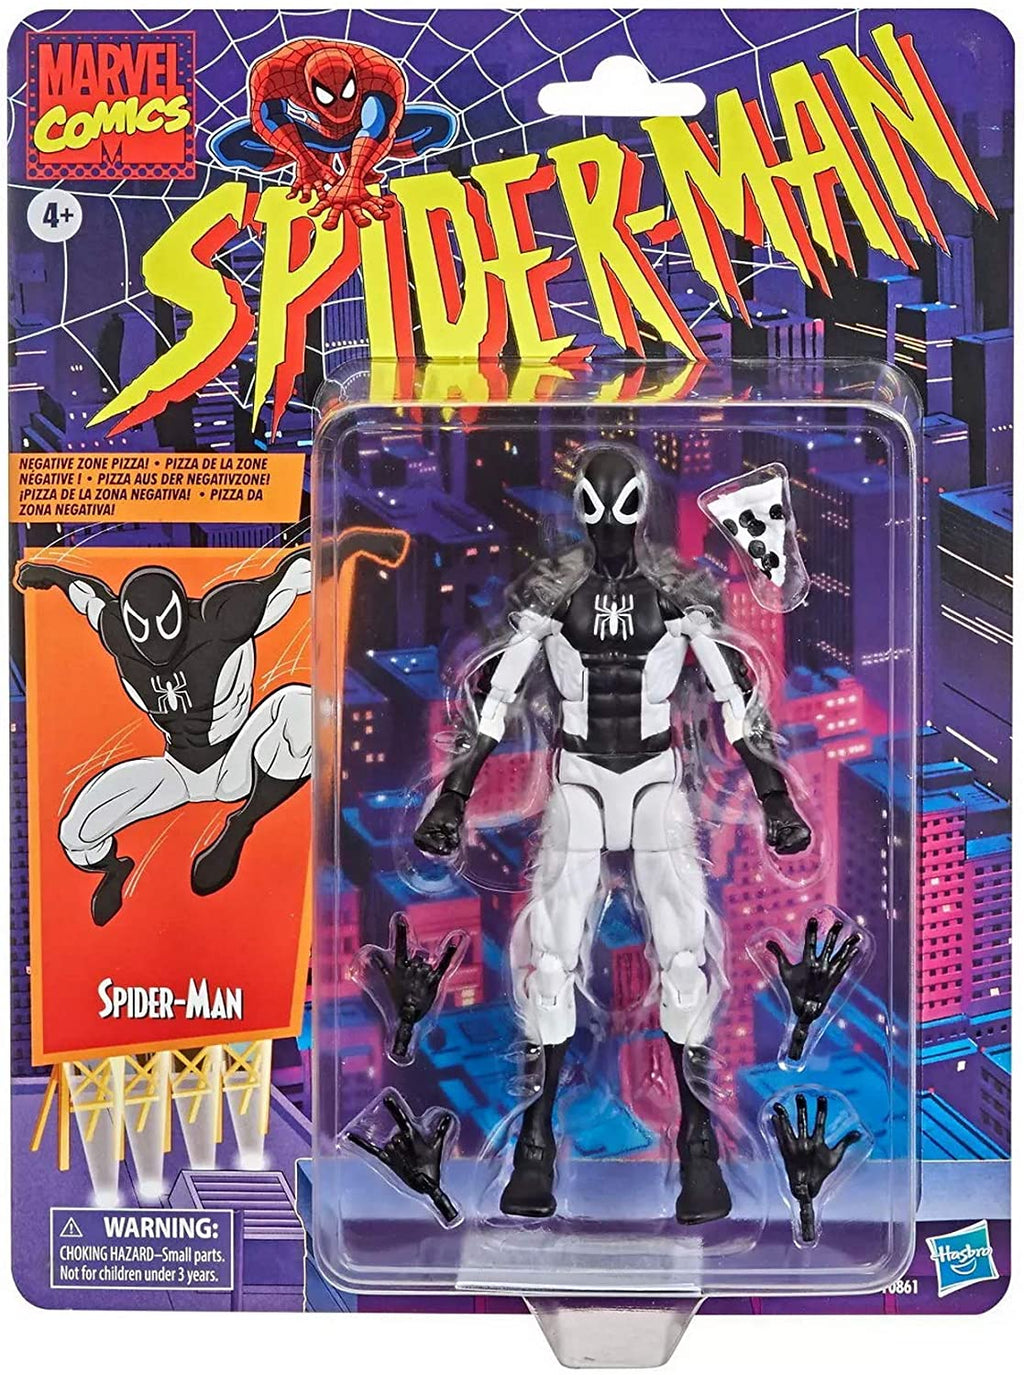 Marvel Legends Retro 6 Inch Action Figure Spider-Man Exclusive - Negative Zone Spider-Man